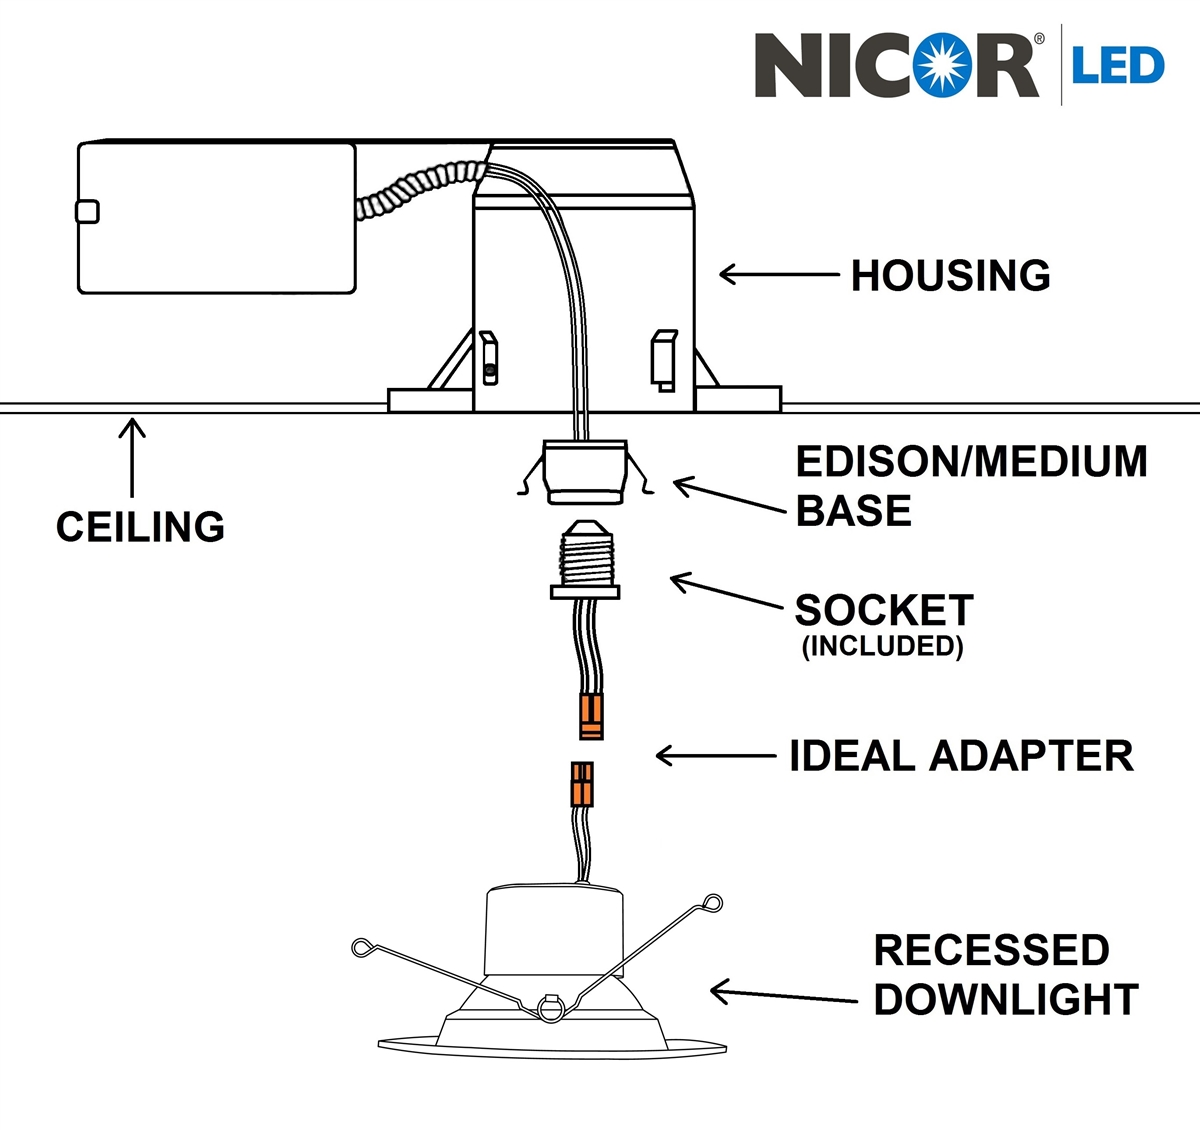 small resolution of nicor exit sign wiring diagram completed wiring diagramsnicor dcr56 800lm dimmable recessed led downlight elevator wiring